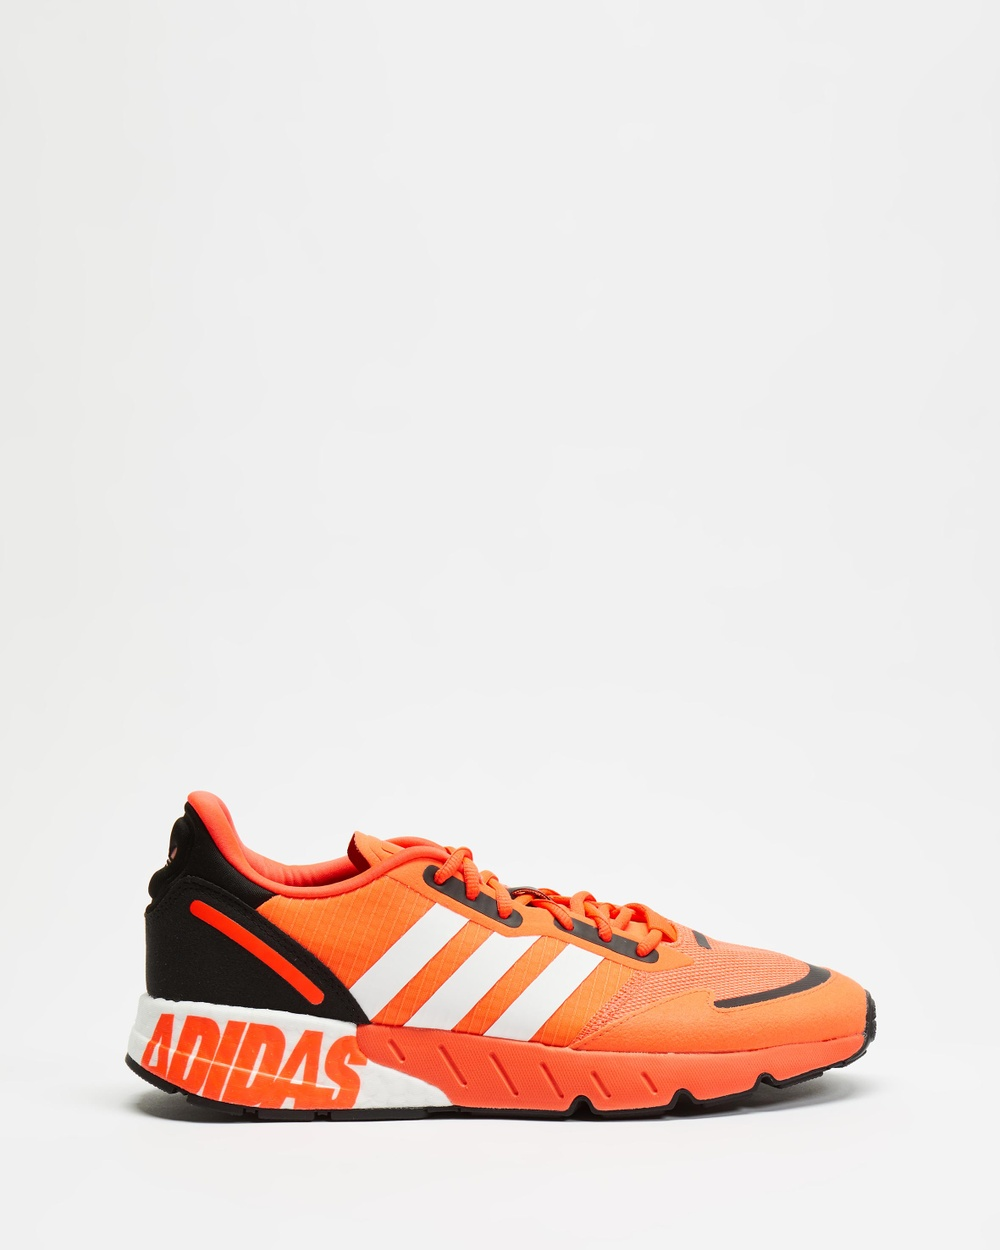 adidas Originals ZX 1K Boost Sneakers Men's Lifestyle Solar Red, White & Core Black